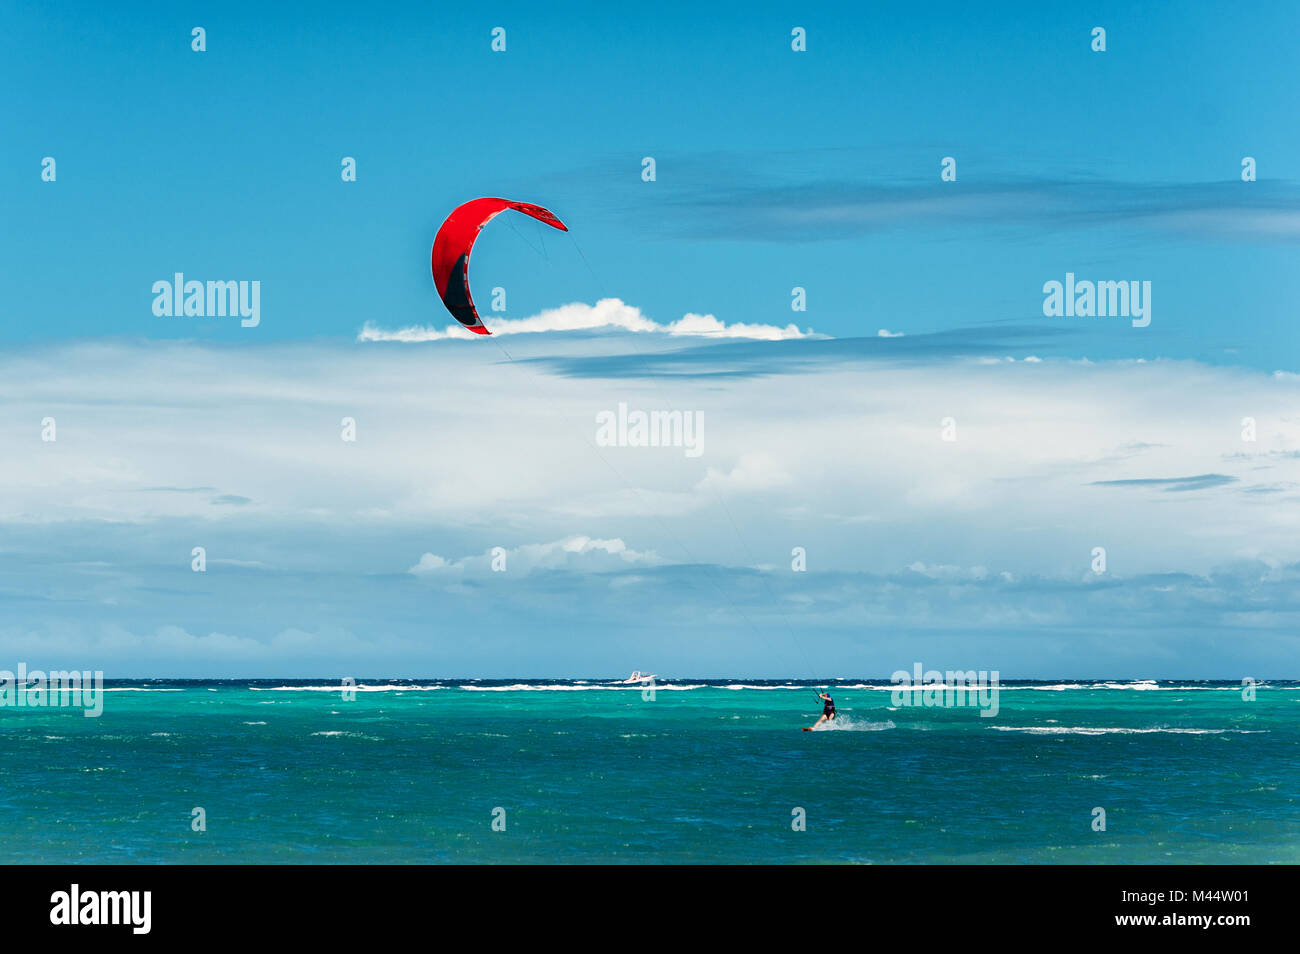 kite surfing. Extreme sport, active, healthy lifestyle concept. Bulabog beach, Boracay, Philippines - Stock Image